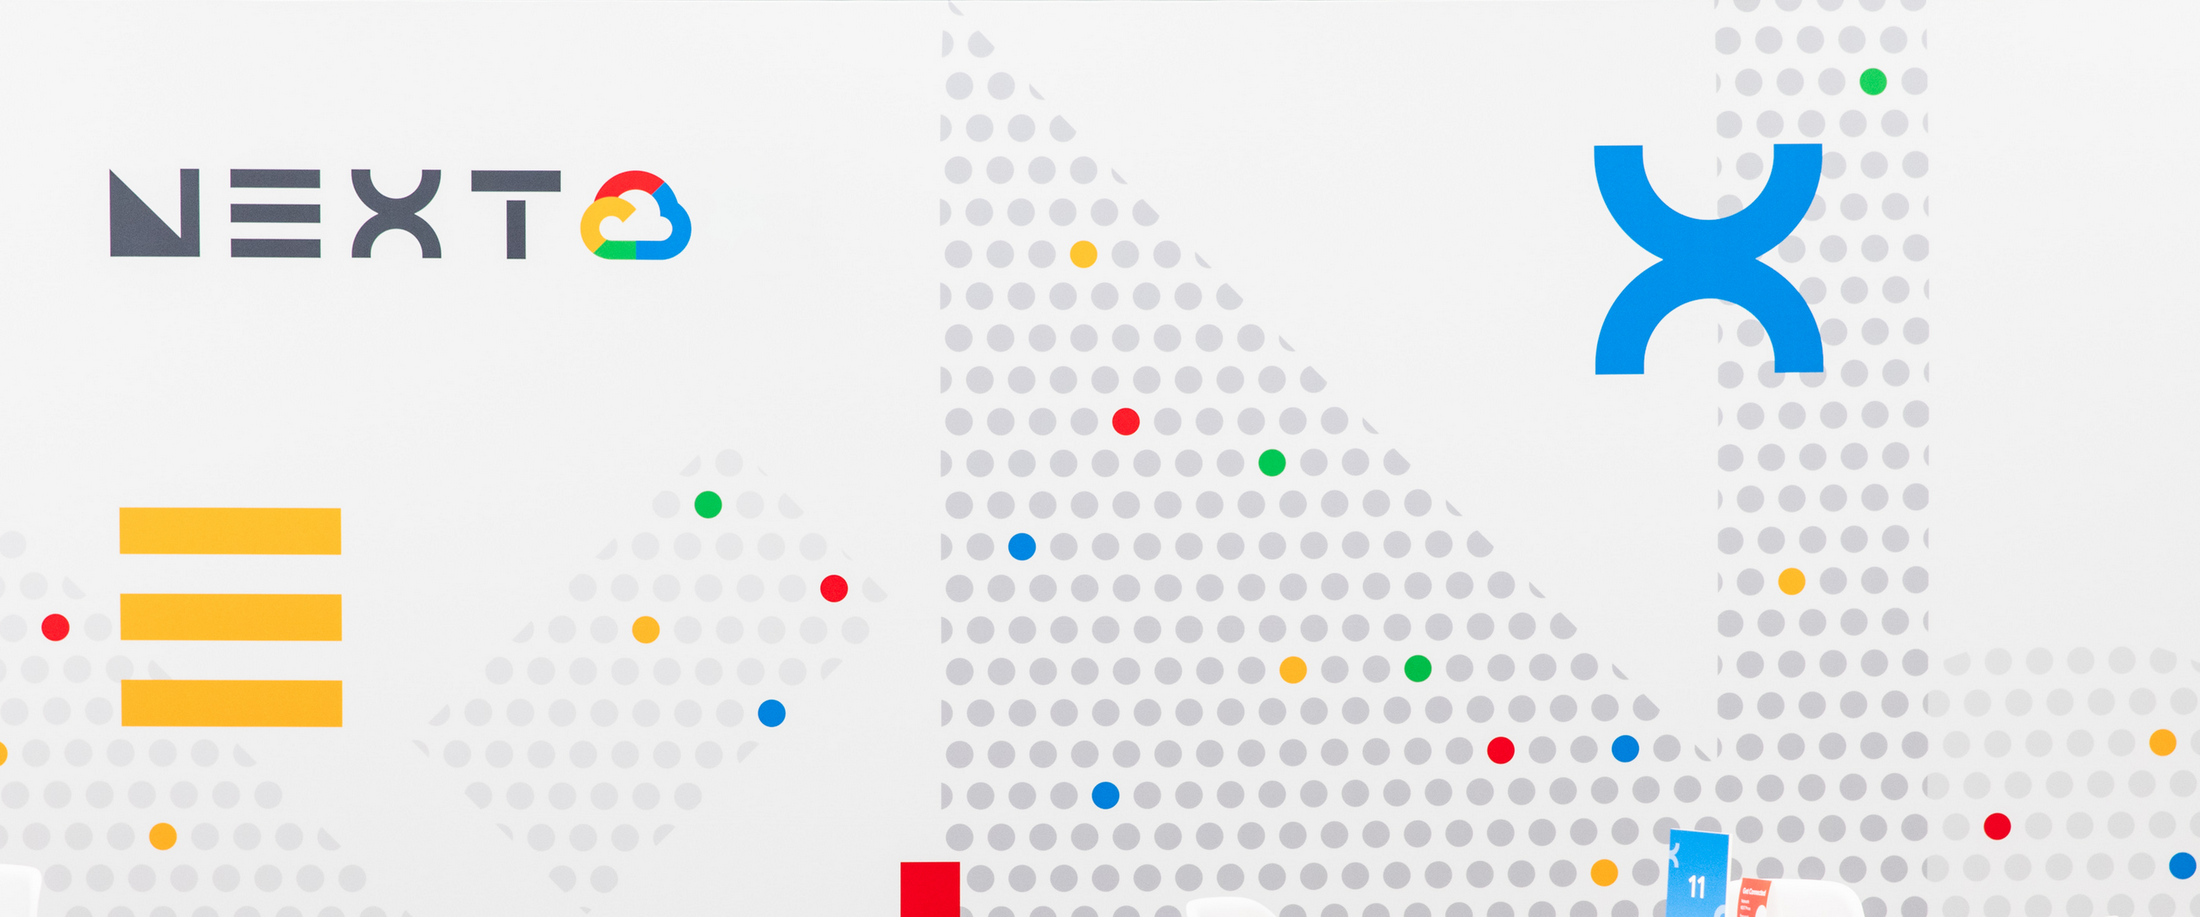 San Francisco Event Calendar 2019 Mark your calendar: Google Cloud Next 2019 | Google Cloud Blog